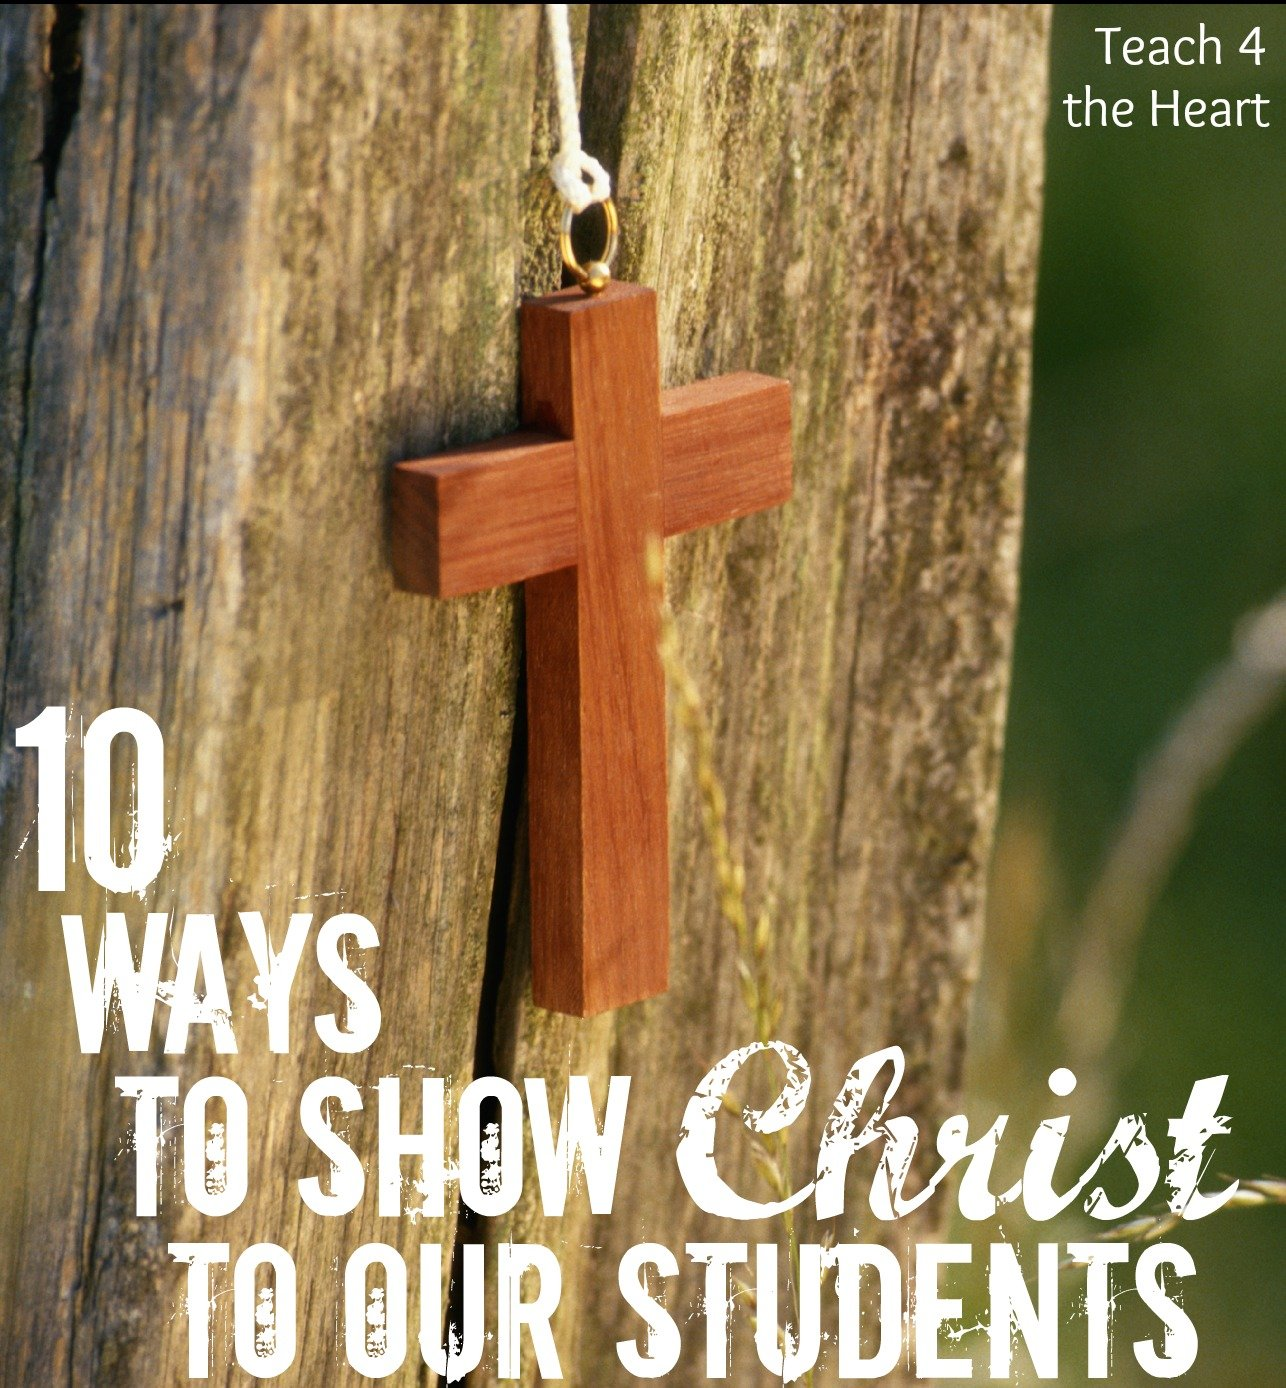 10 Ways to Show Christ to Our Students